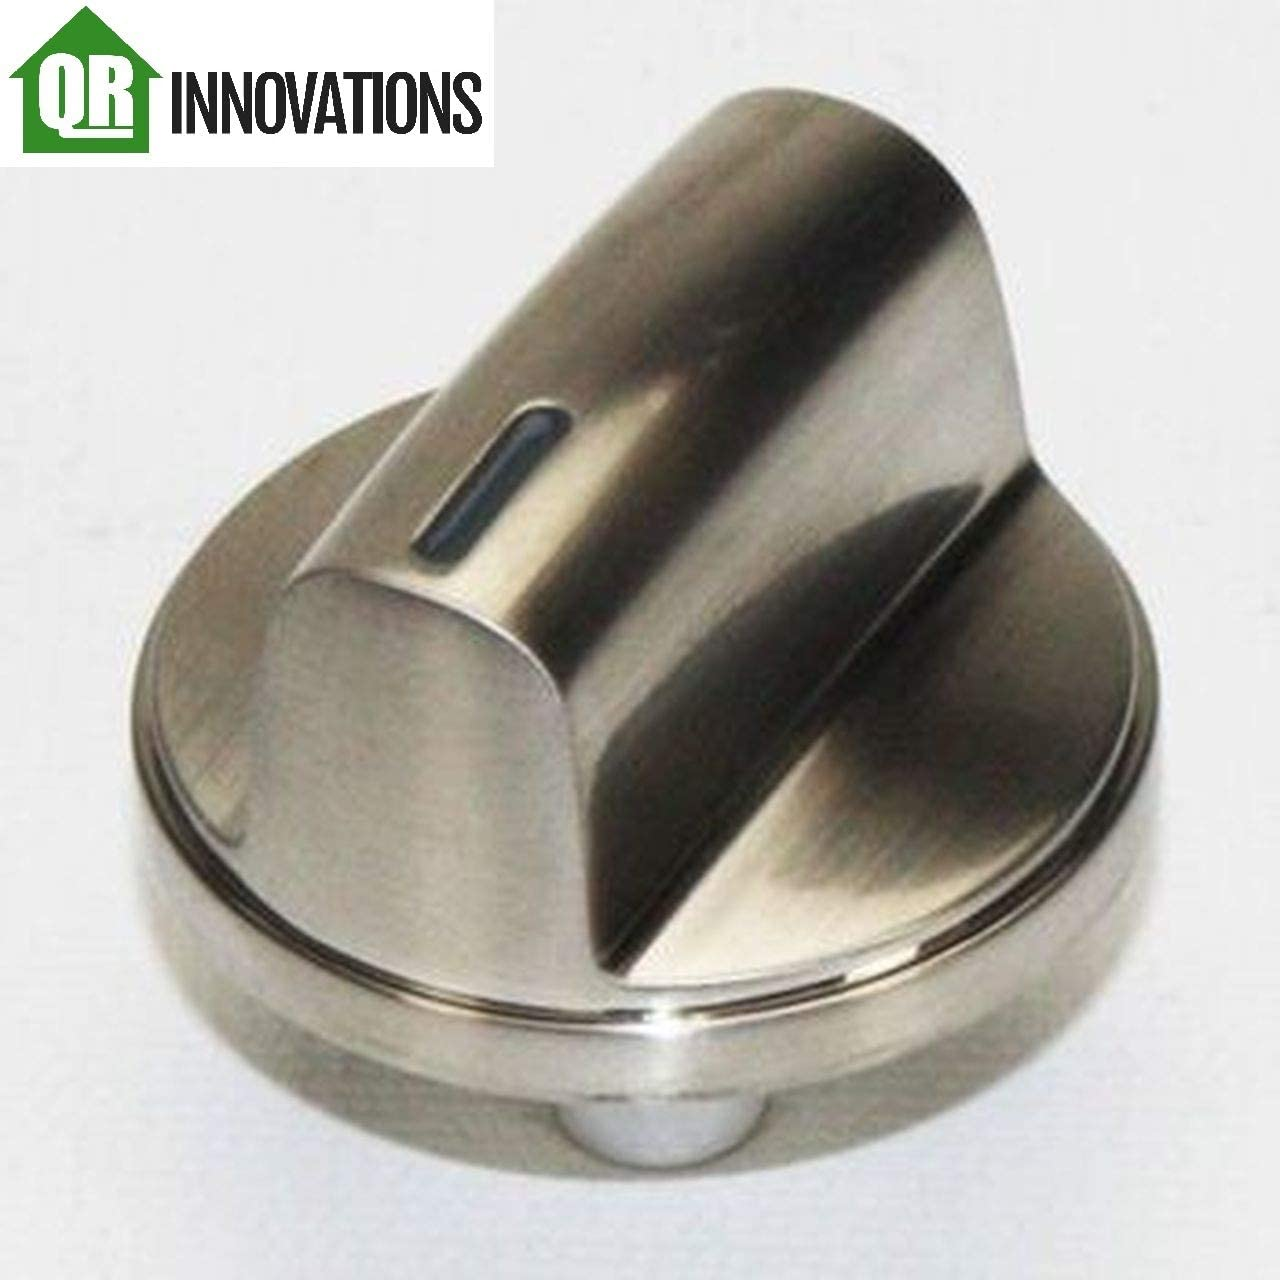 00962937 knob Compatible with Bosch Cooking Range